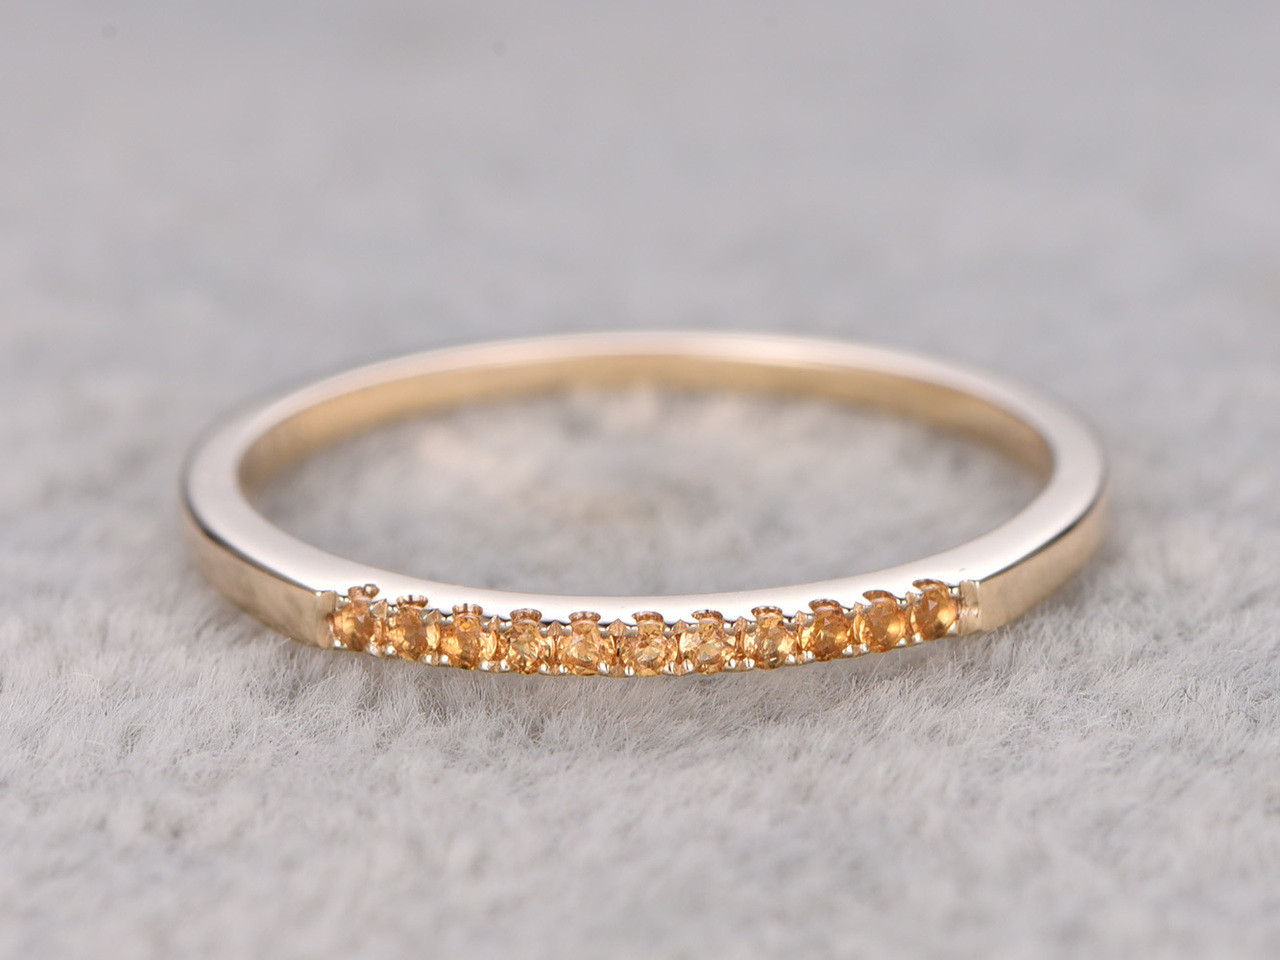 Citrine Wedding Ring 14k Yellow Gold Thin Pave Eternity Band November Birthstone Stacking